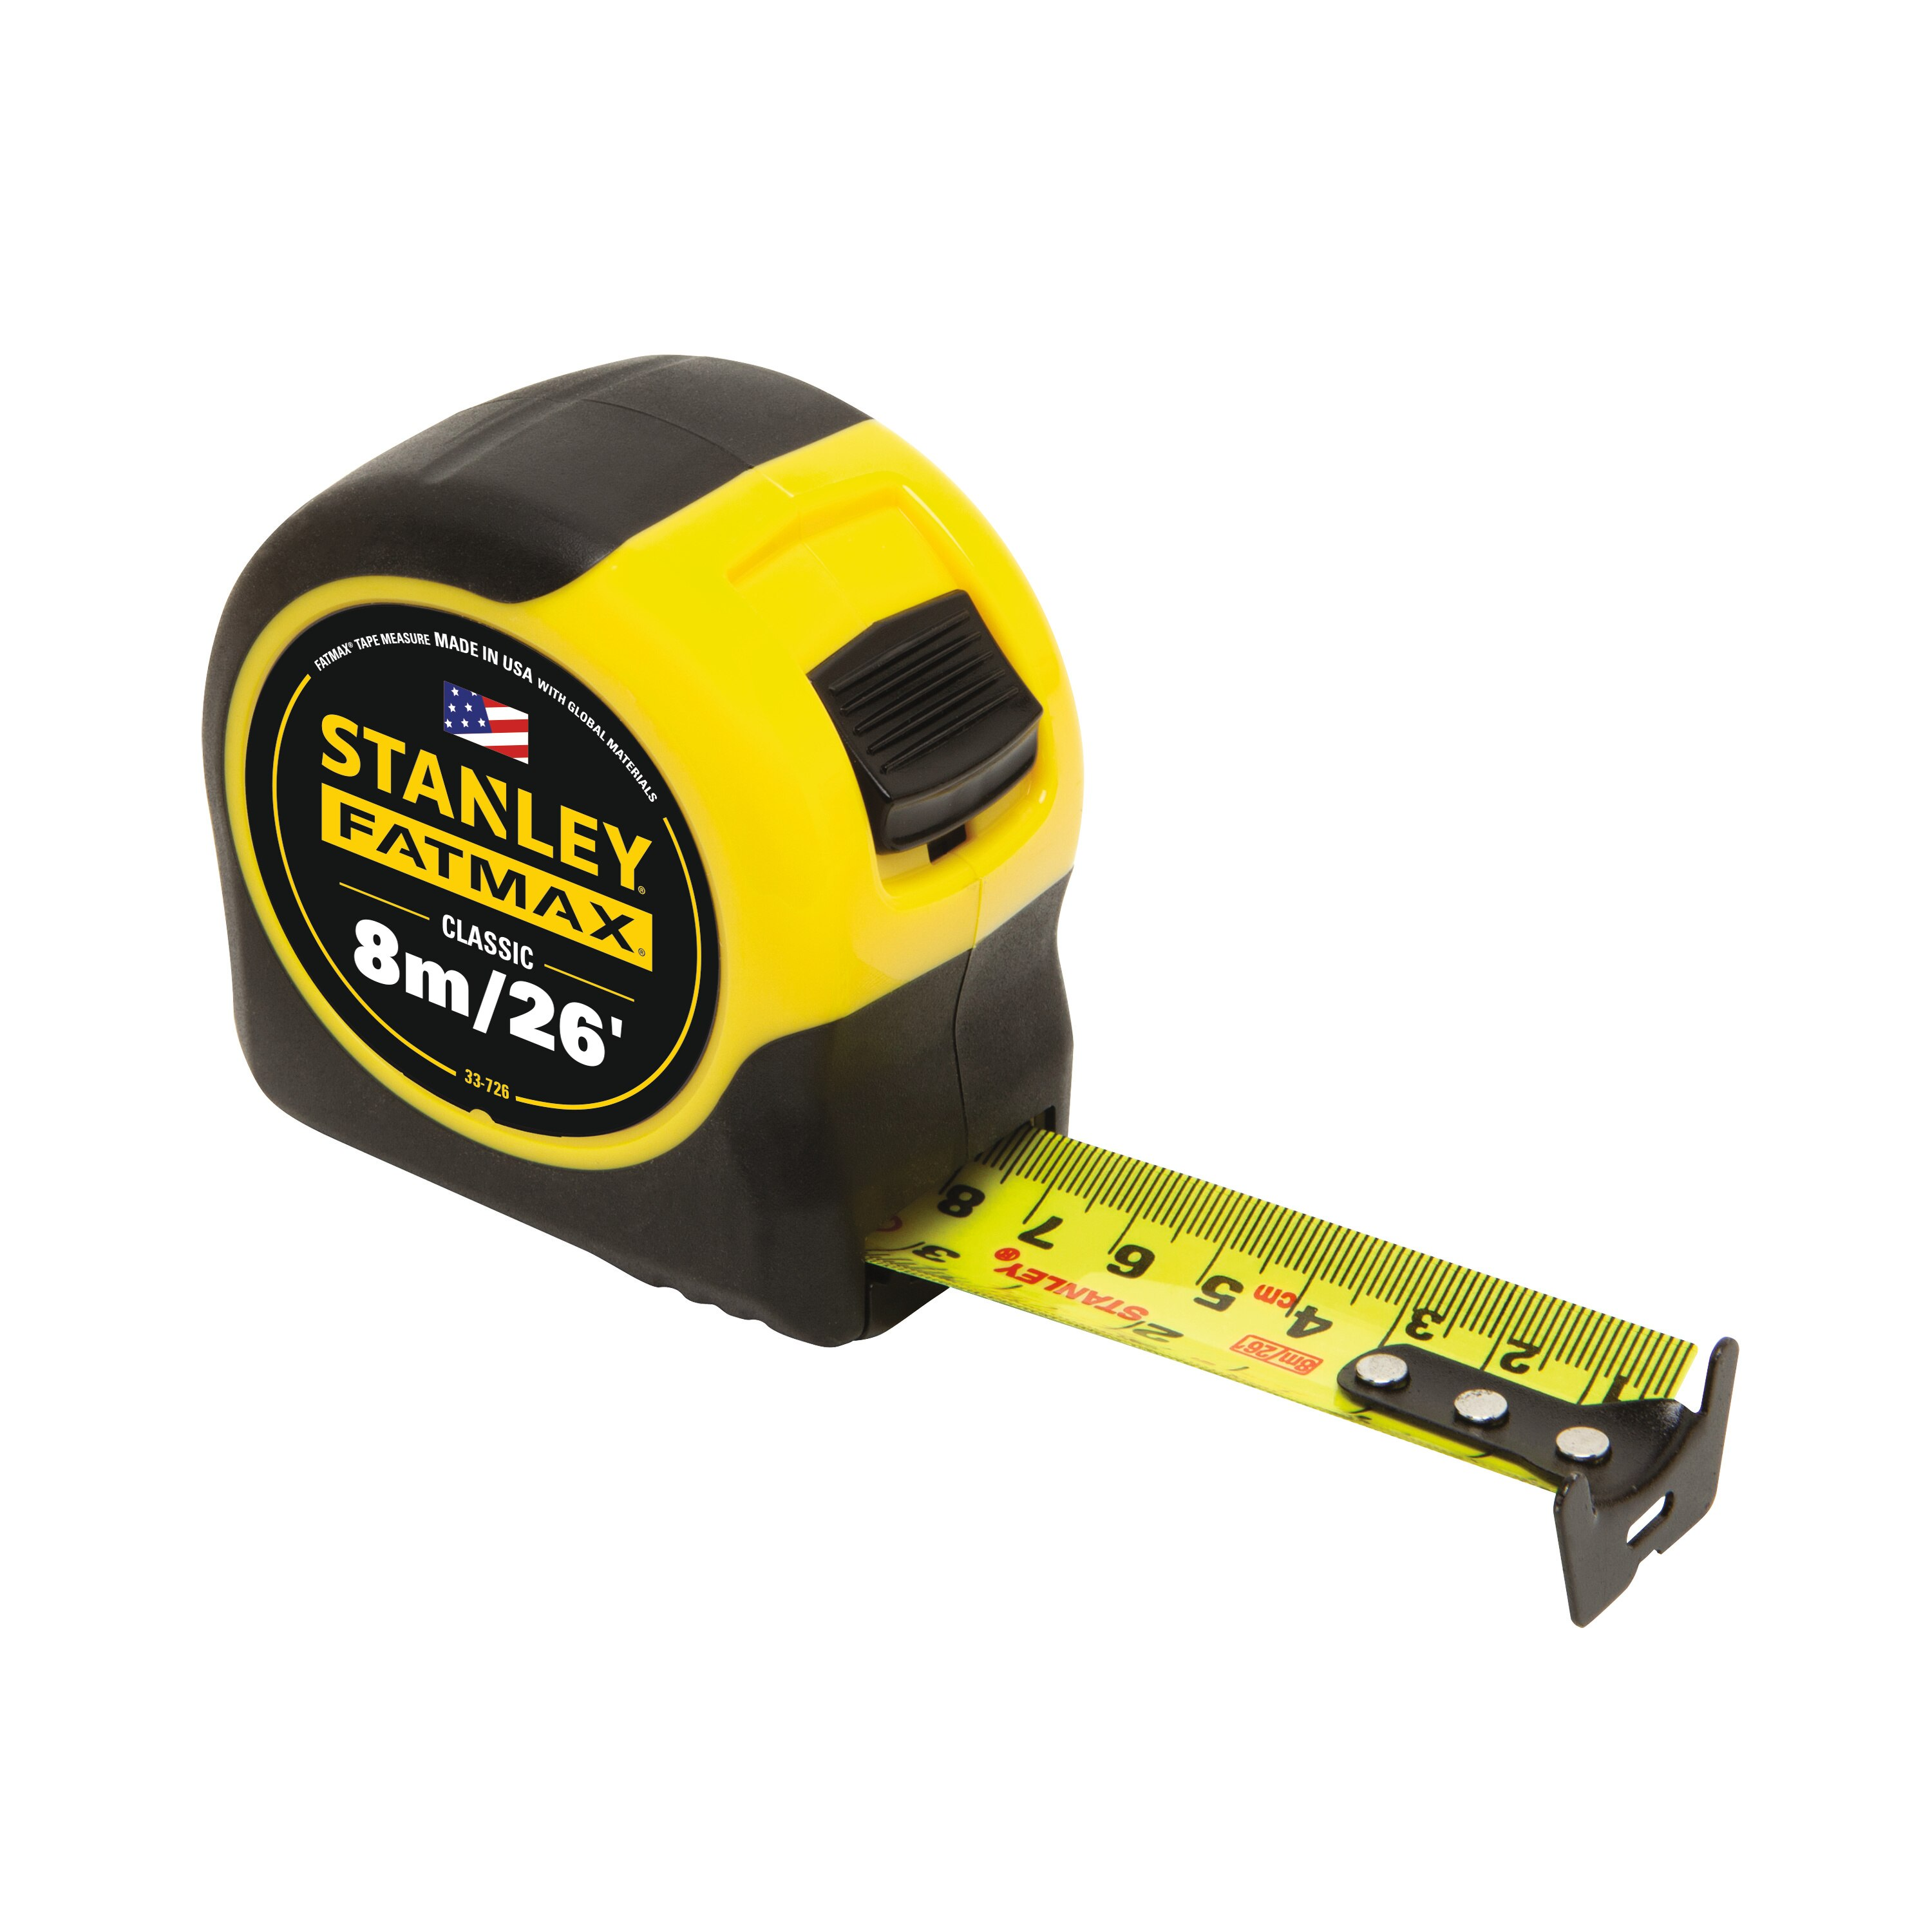 Stanley Tools - 8m26 ft FATMAX Classic Tape Measure - 33-726